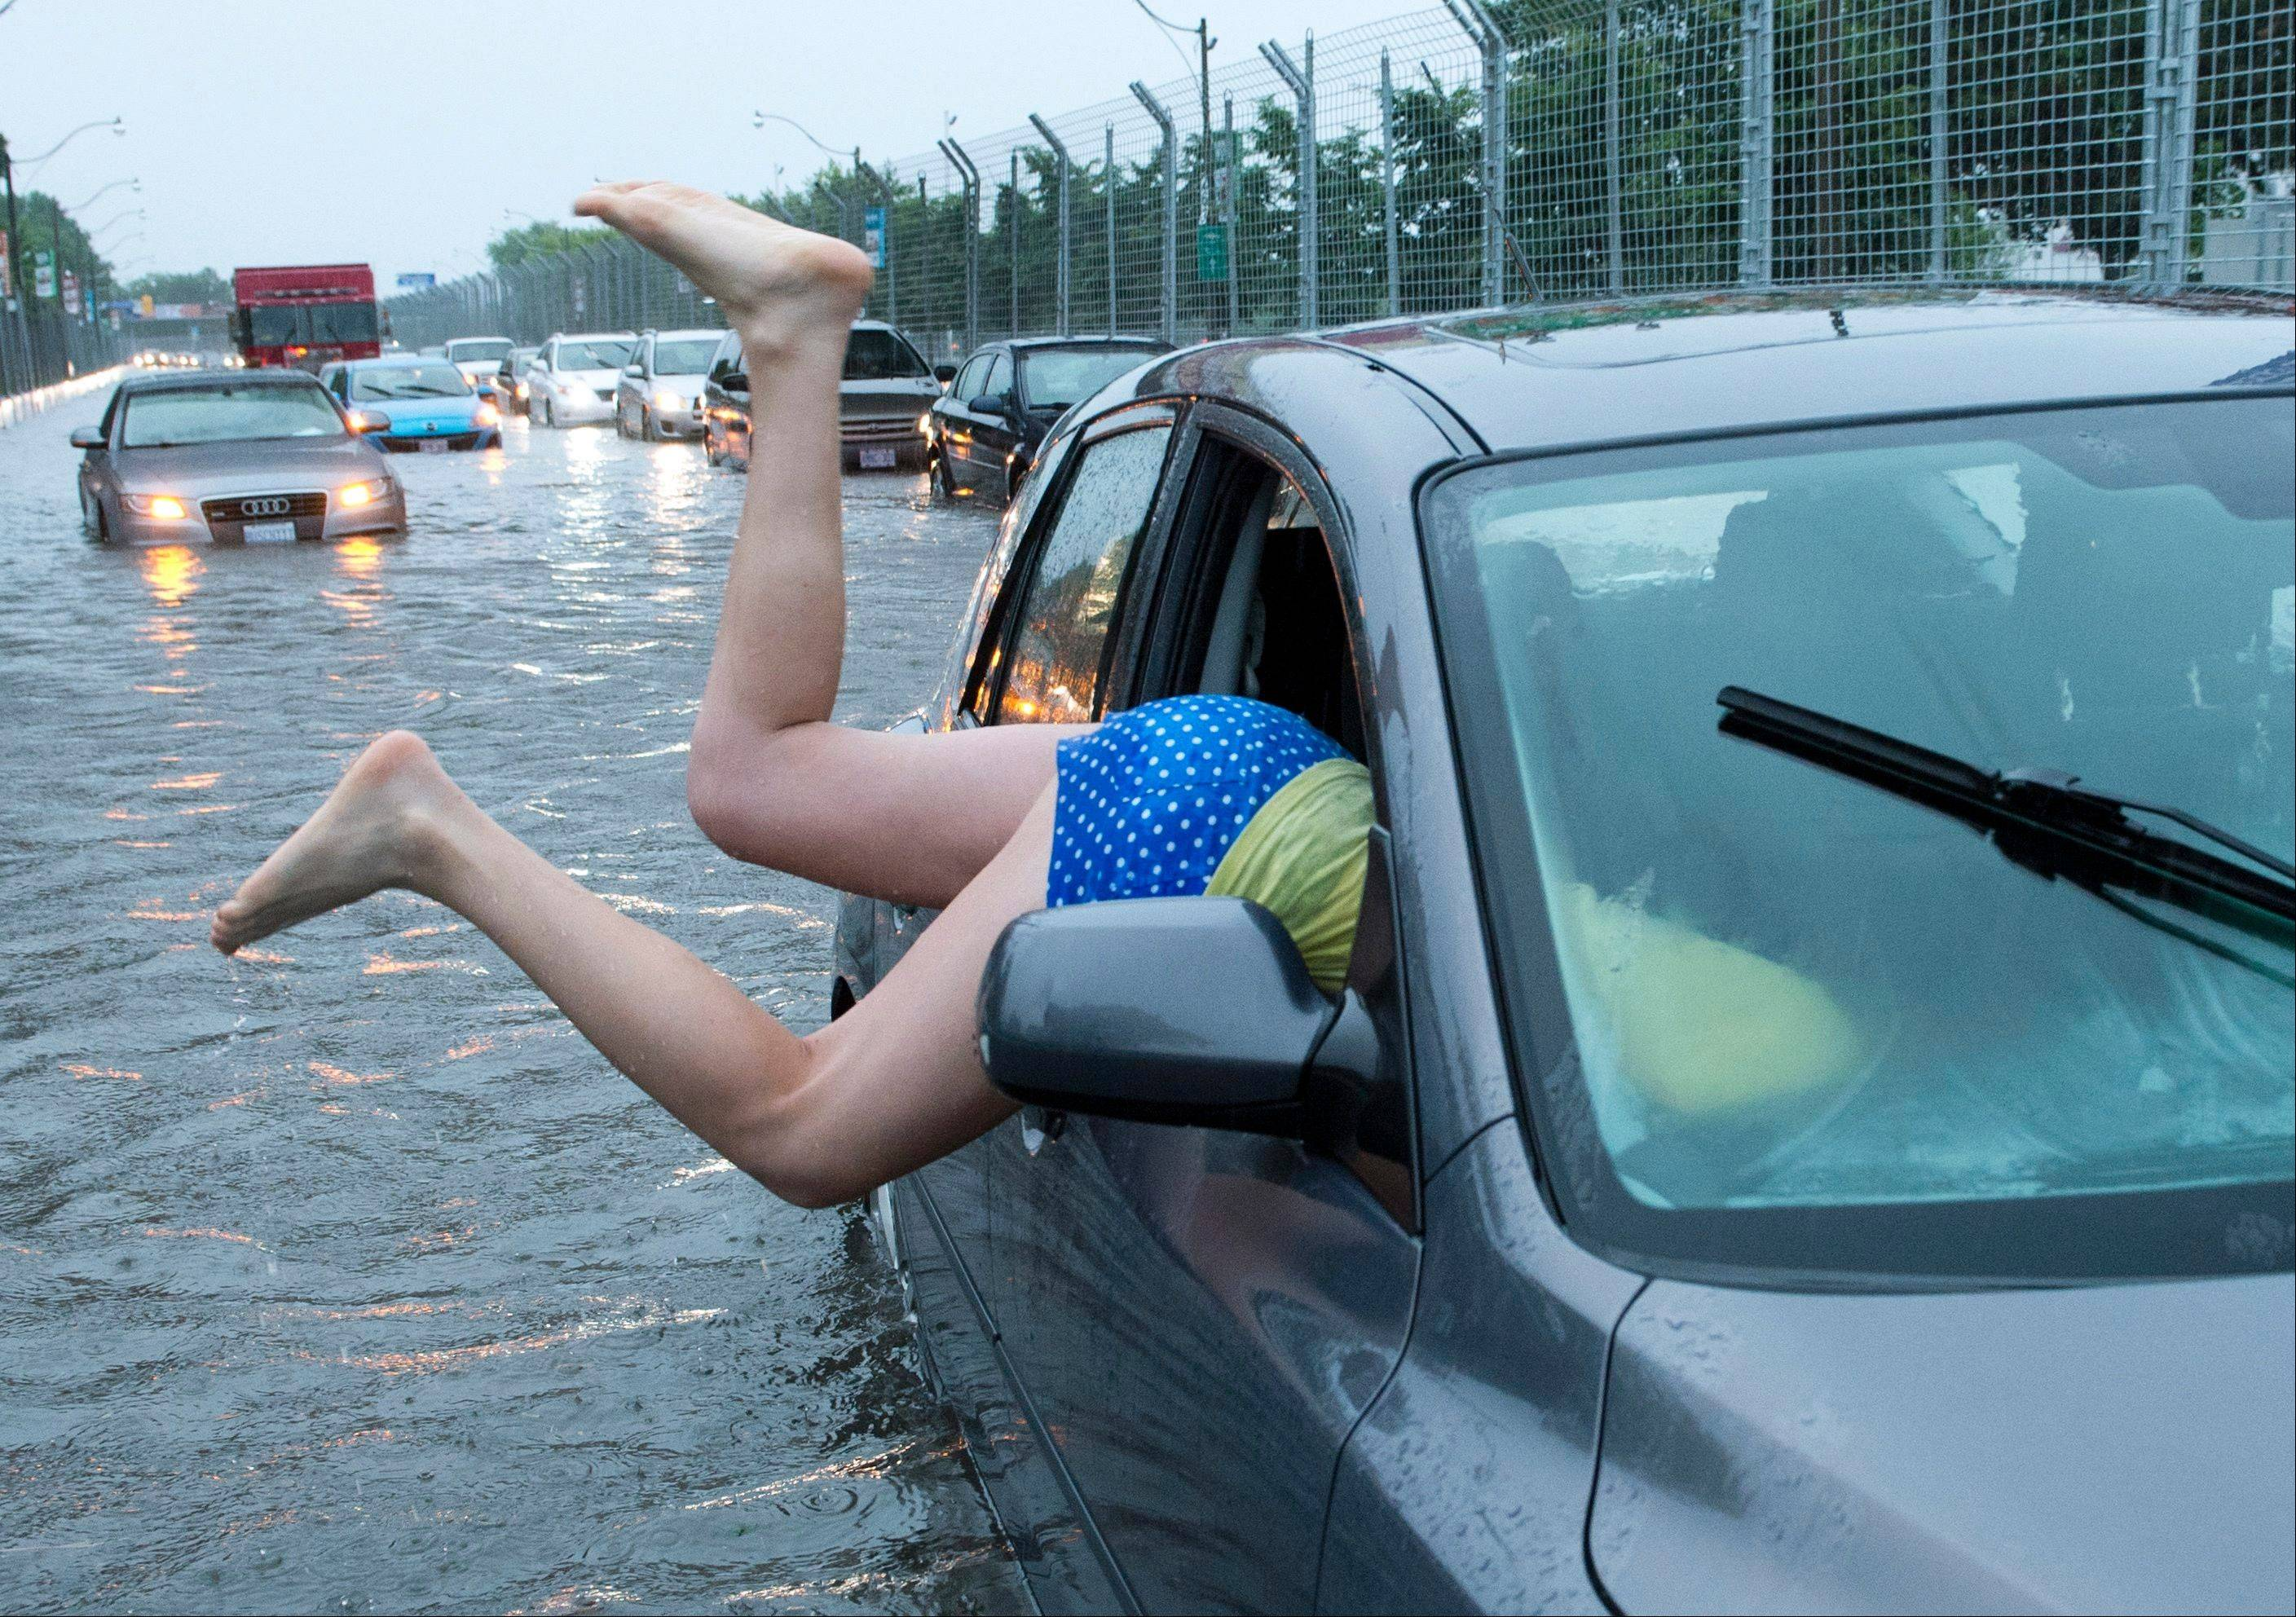 A woman gets back into her flooded car on the Toronto Indy course on Lakeshore Boulevard in Toronto on Monday, July 8 2013.